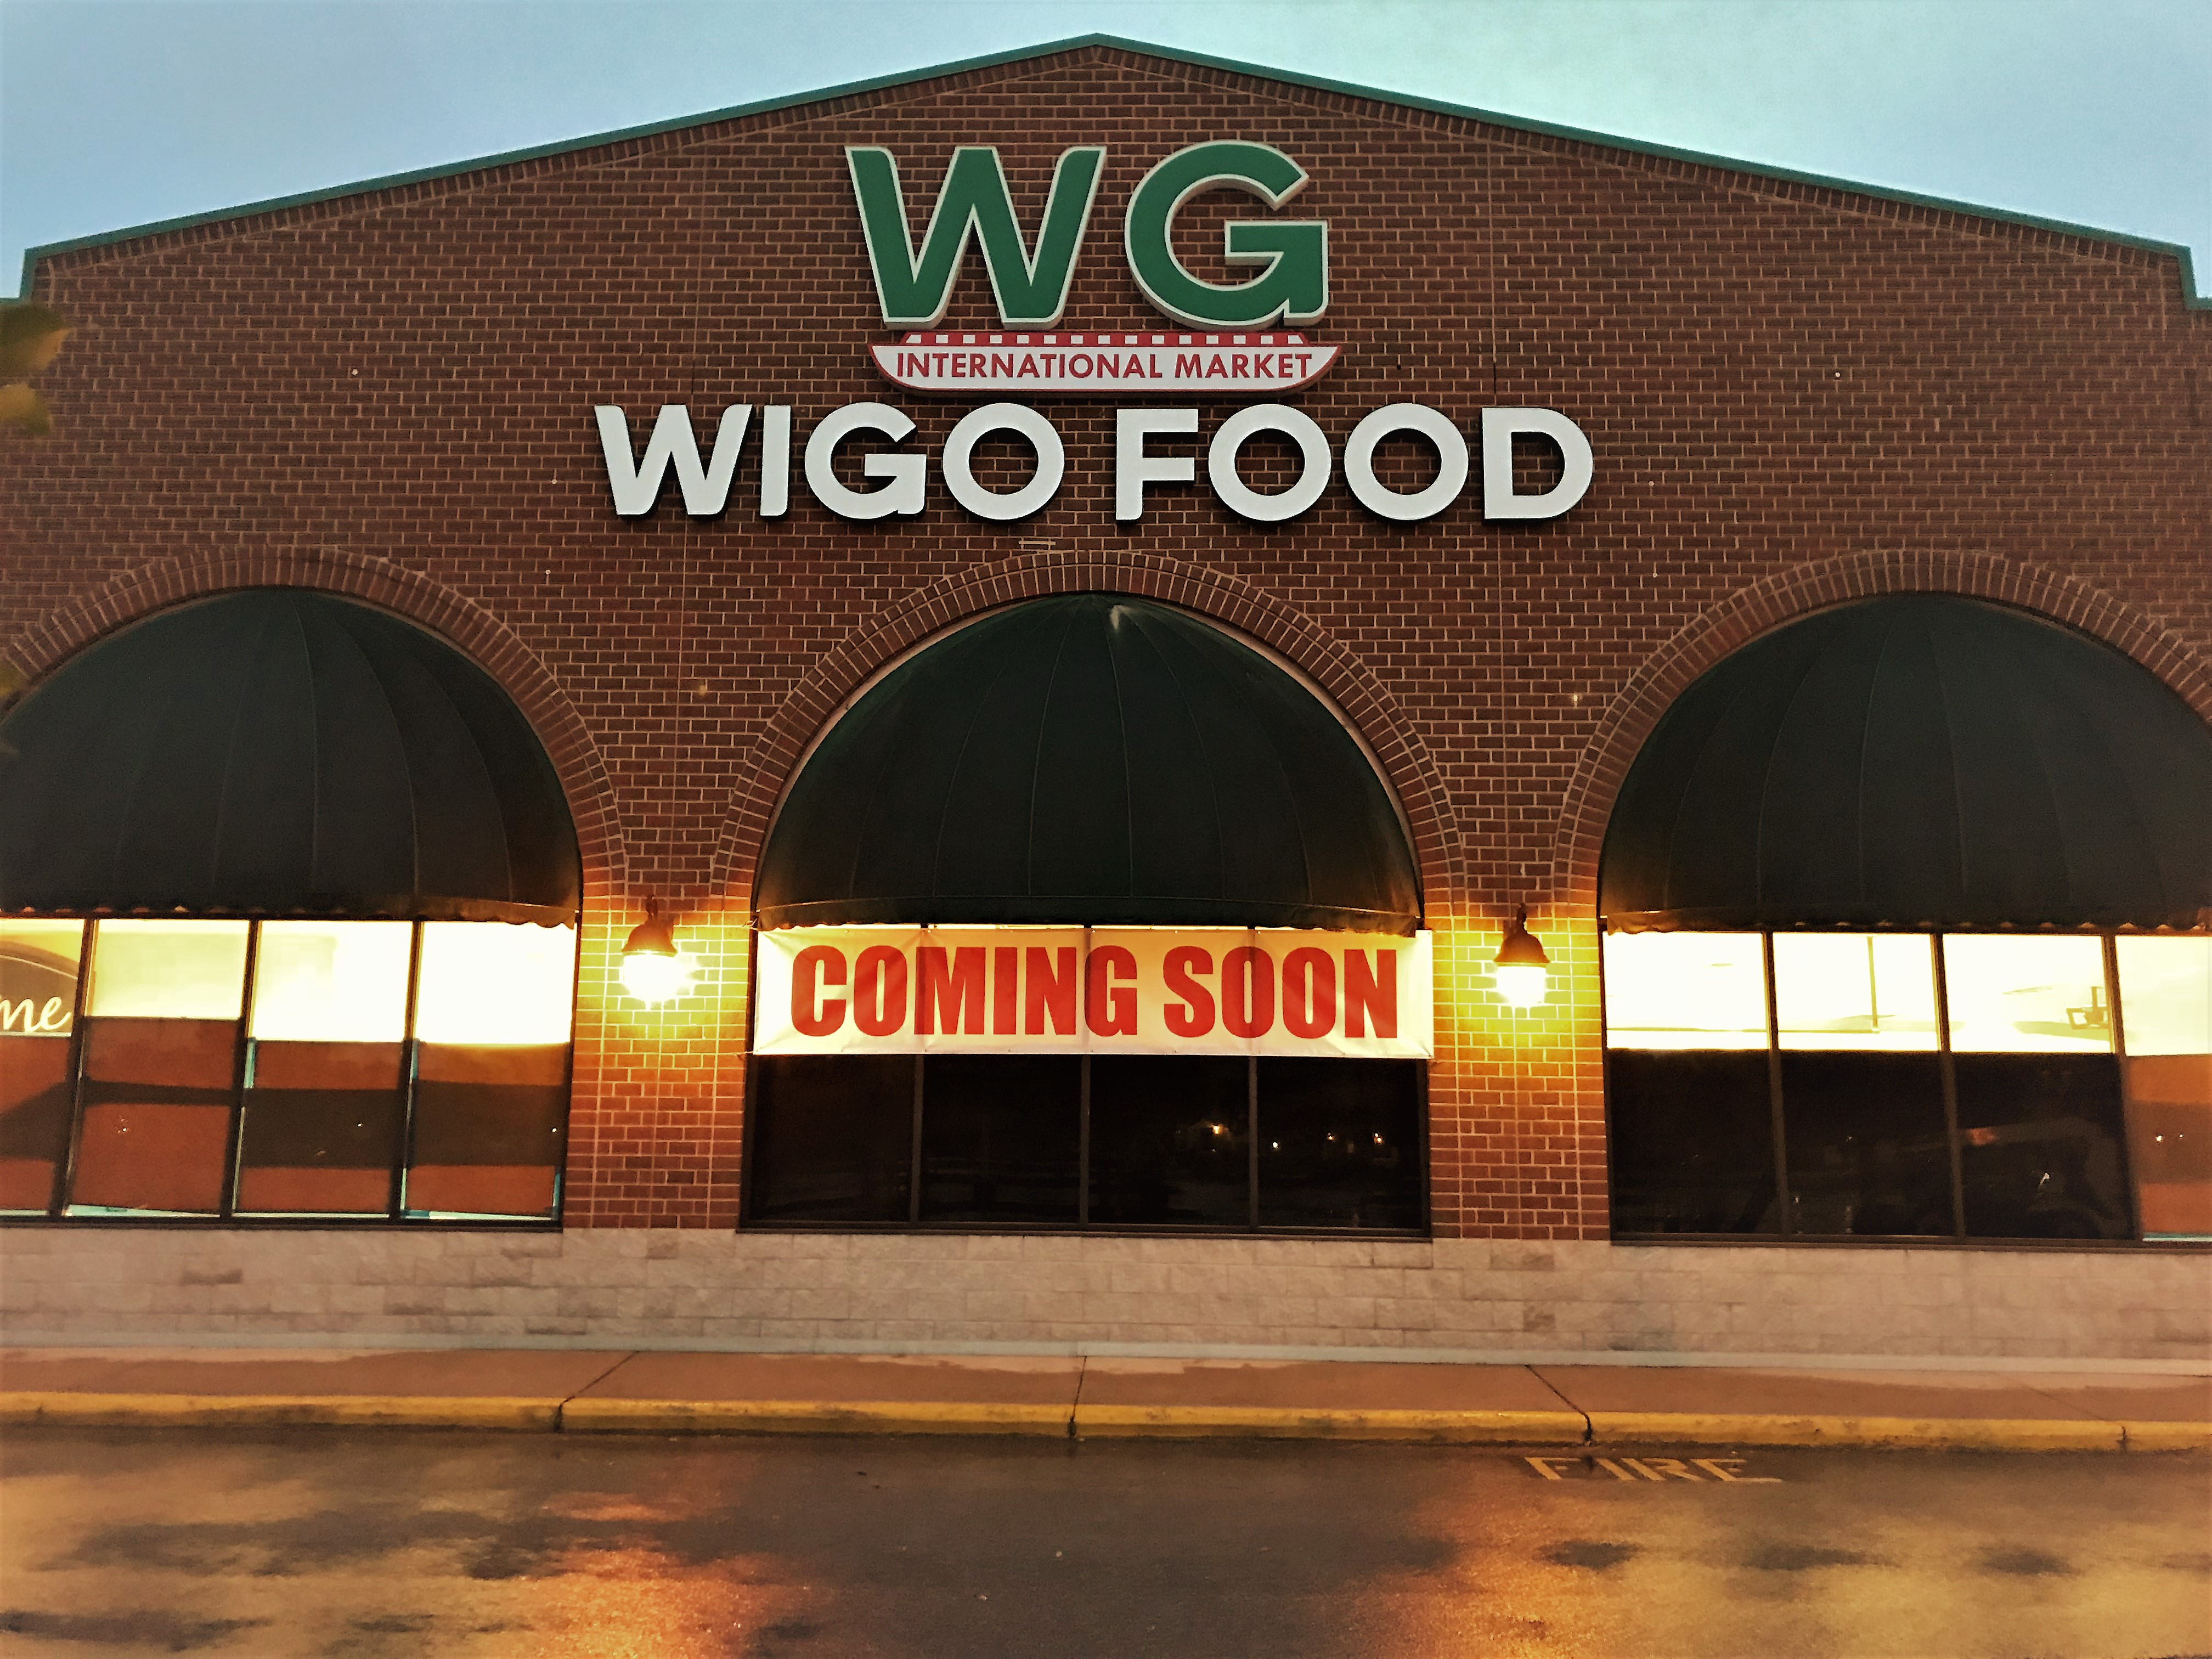 Wigo Food - International Market